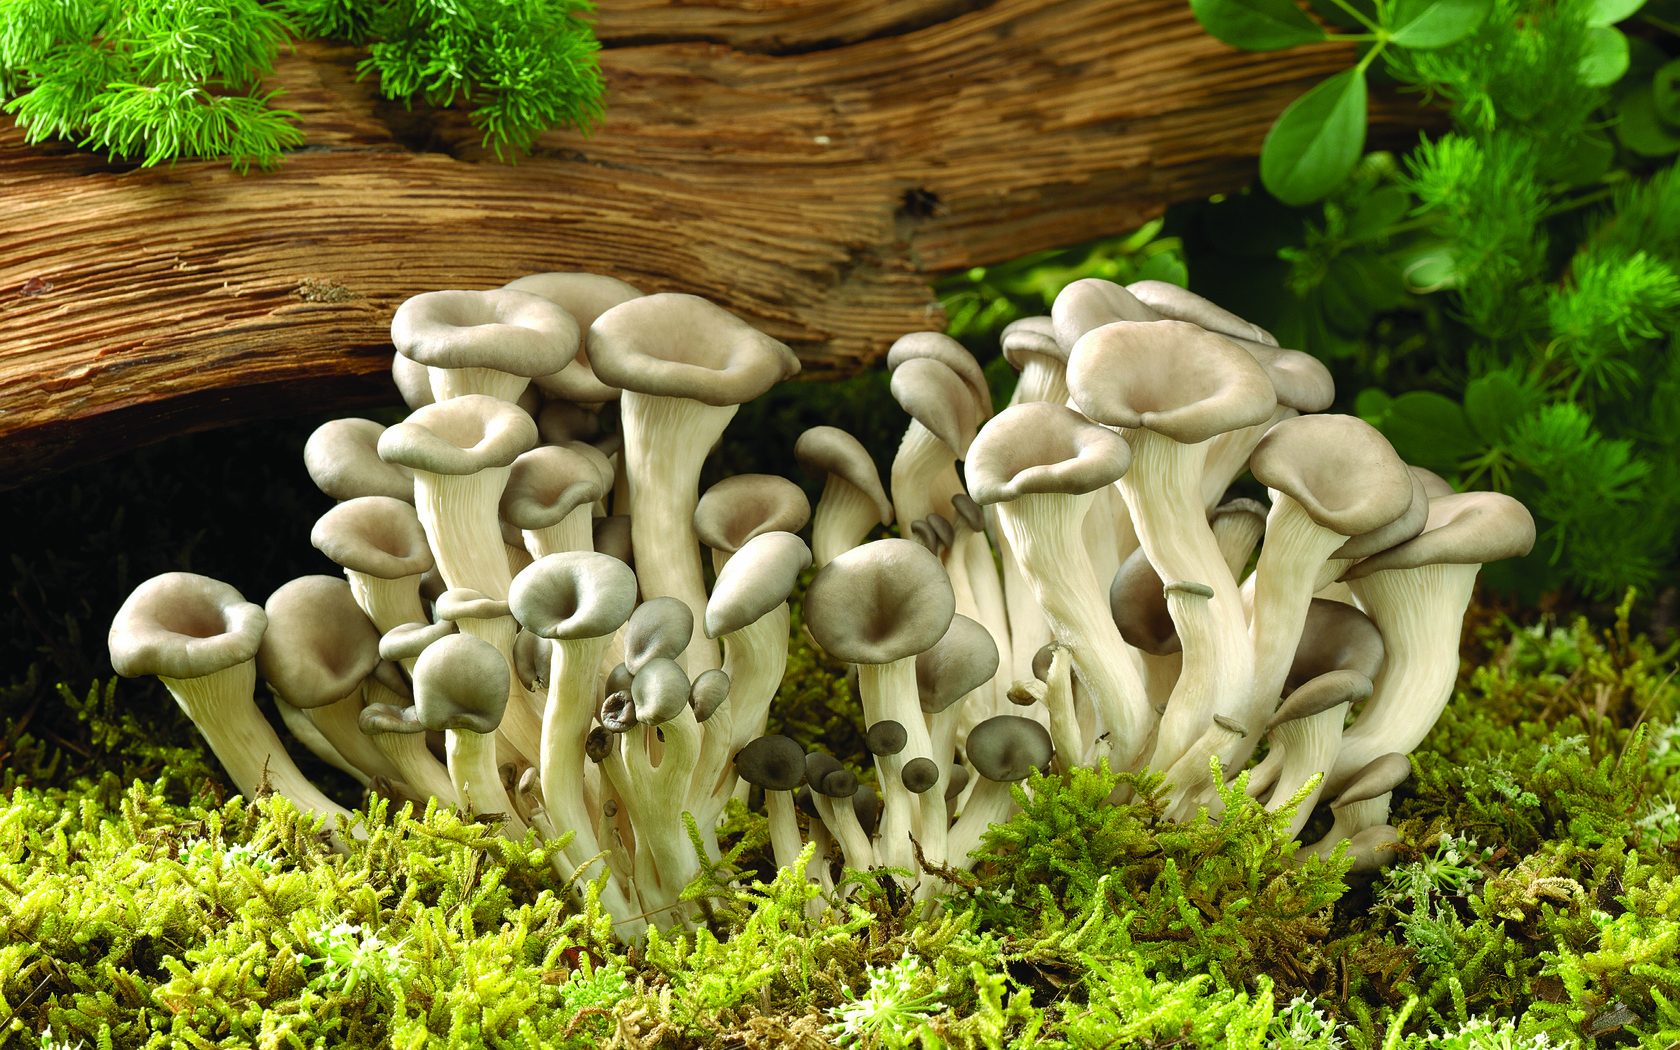 When The Wild Things Grow Seacoastonline Com Mushroom Newswire